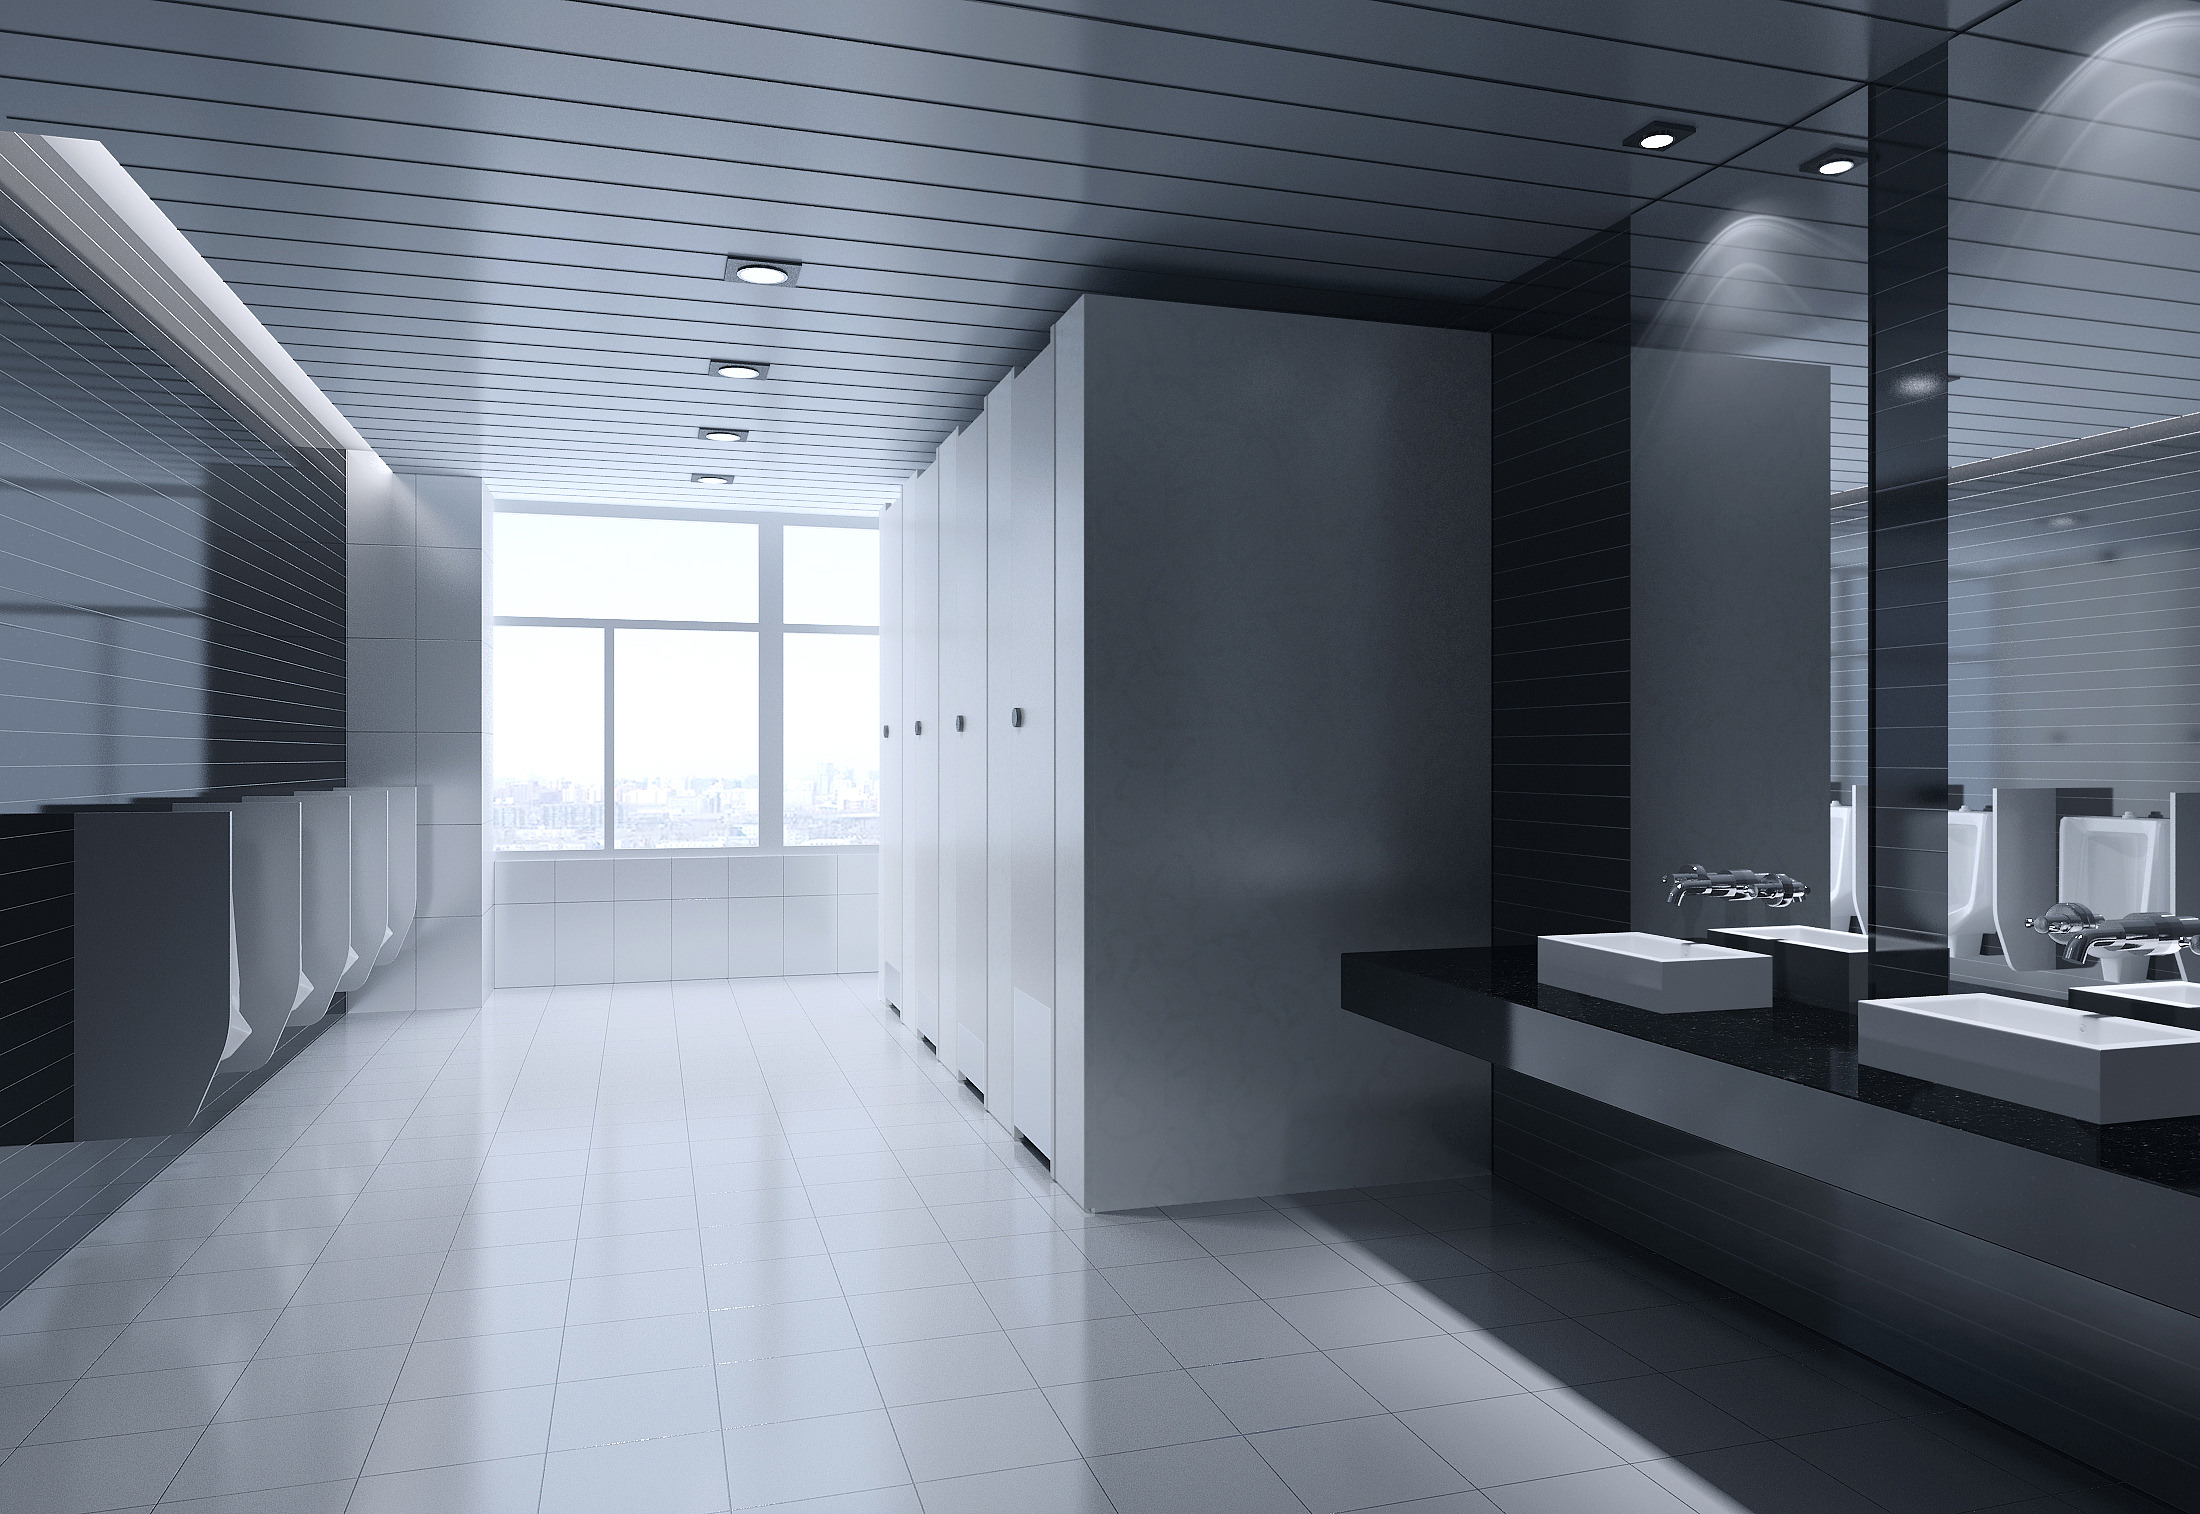 Public Toilet With Black Wall And Ceiling 3d Model Max 2